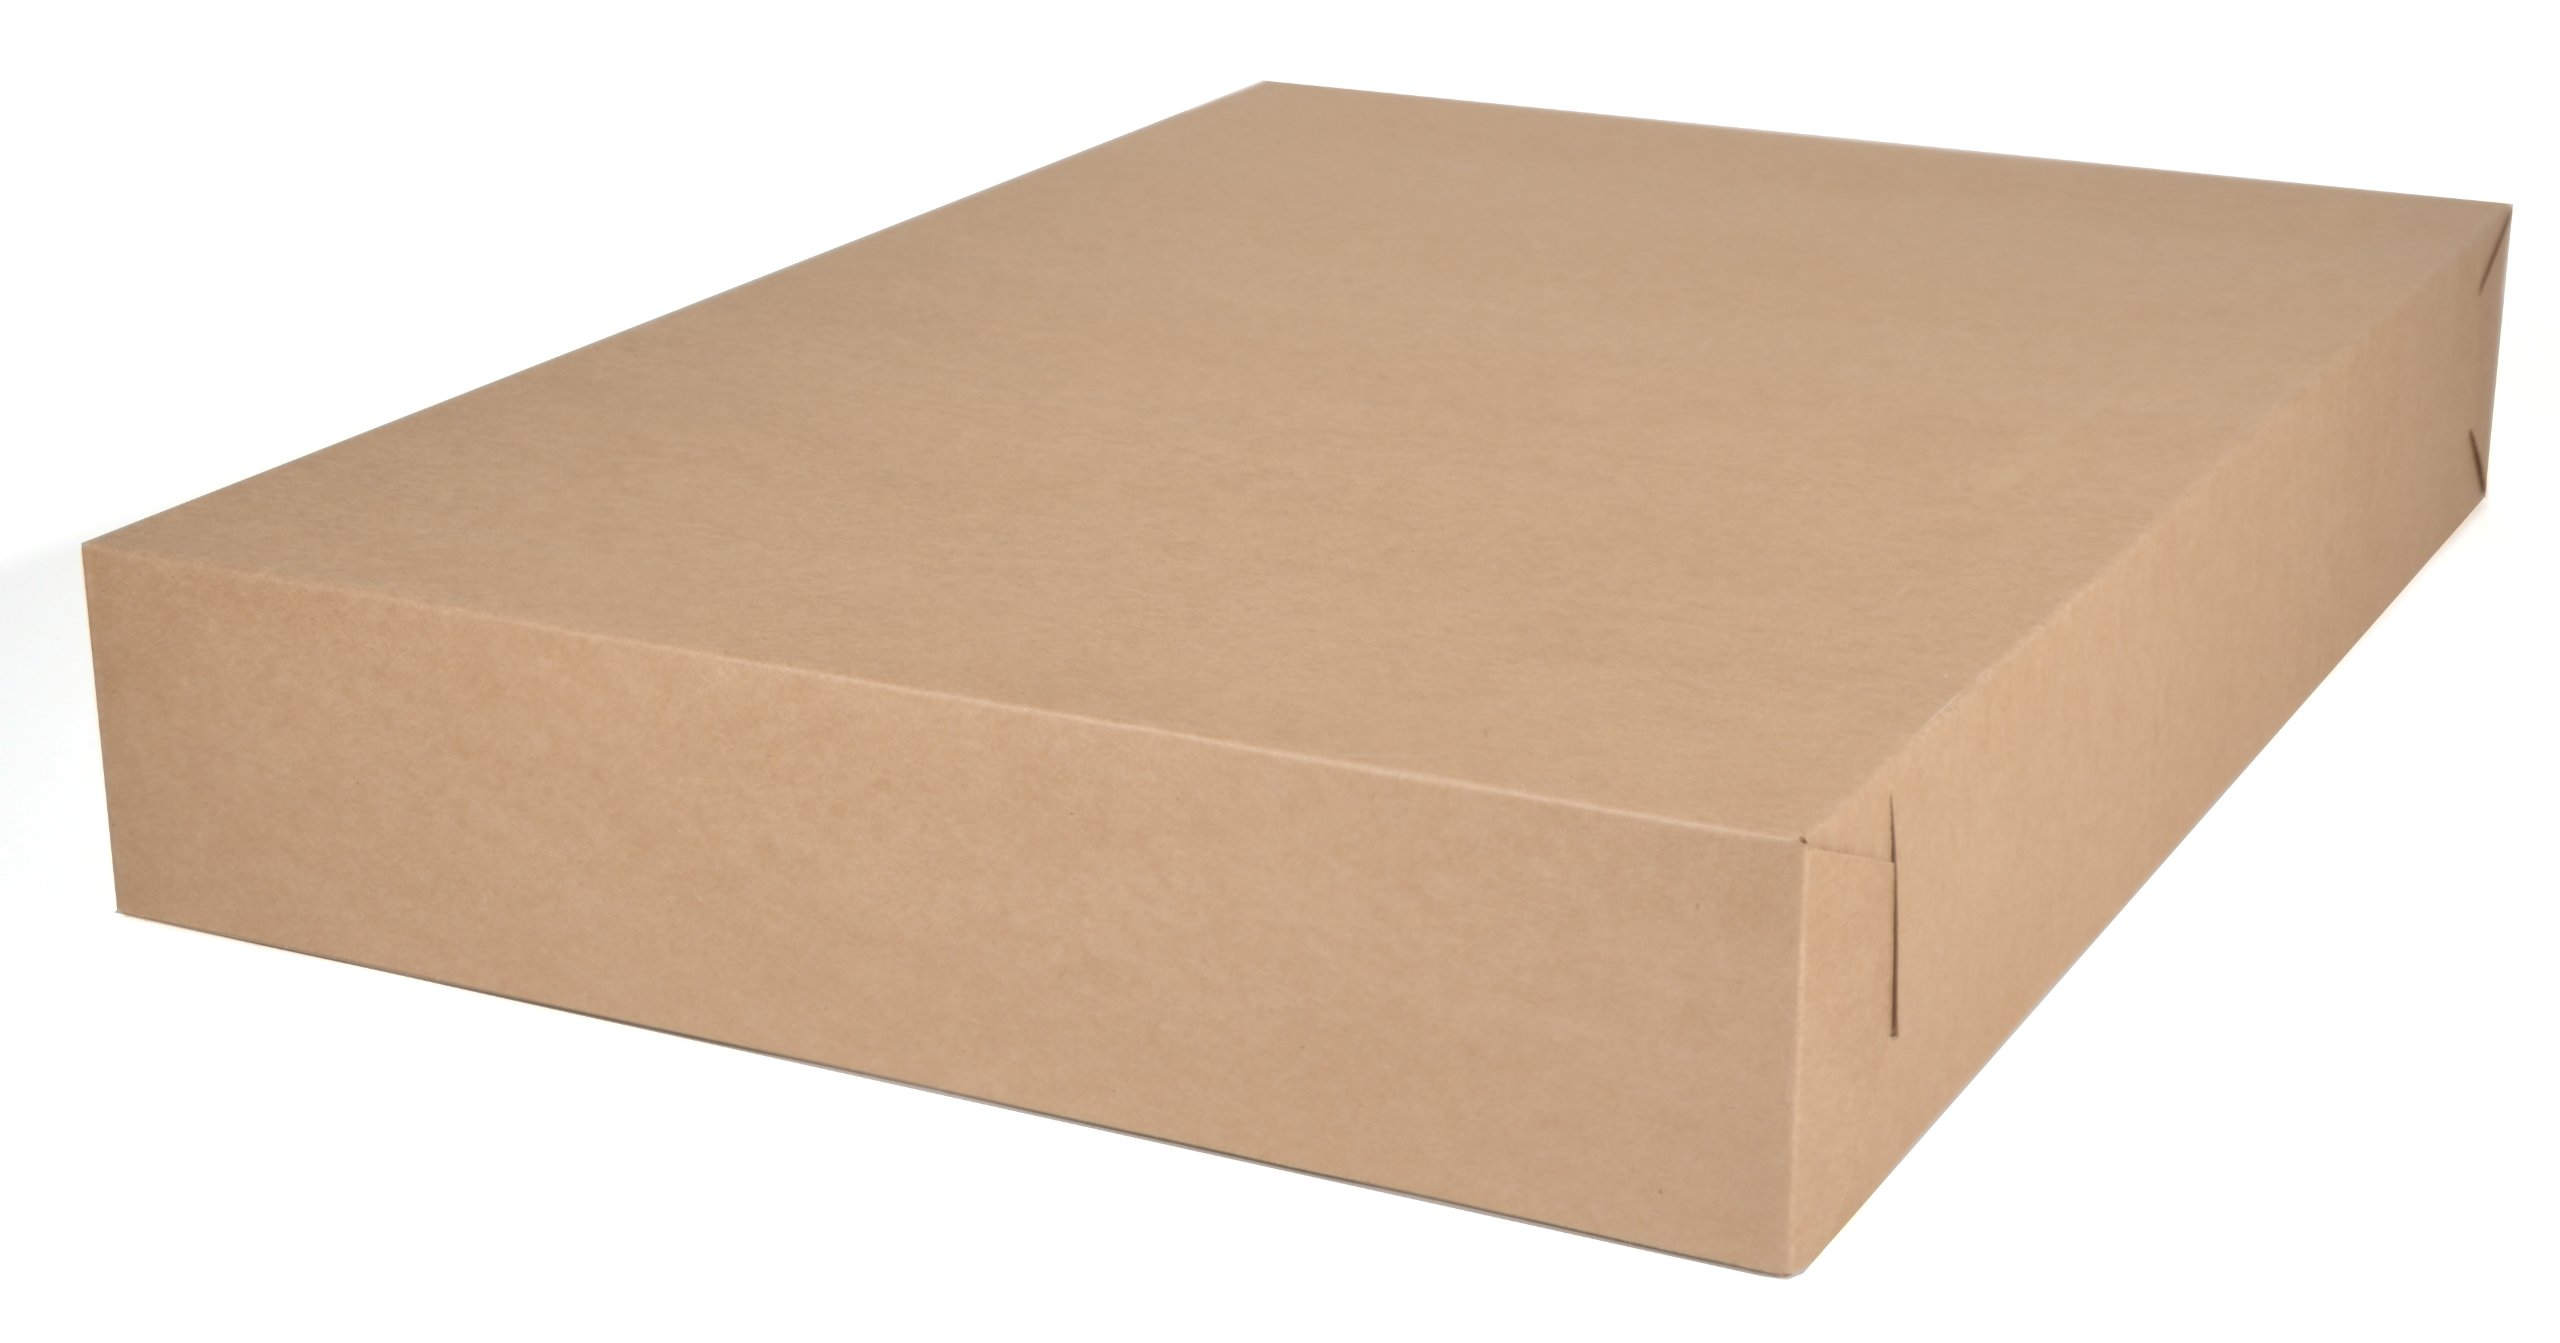 Southern Champion Tray 1095K Kraft Paperboard Non-Window Bakery Tray, 26 Length x 18-1/2 Width x 4 Height (Case of 50 Pieces)